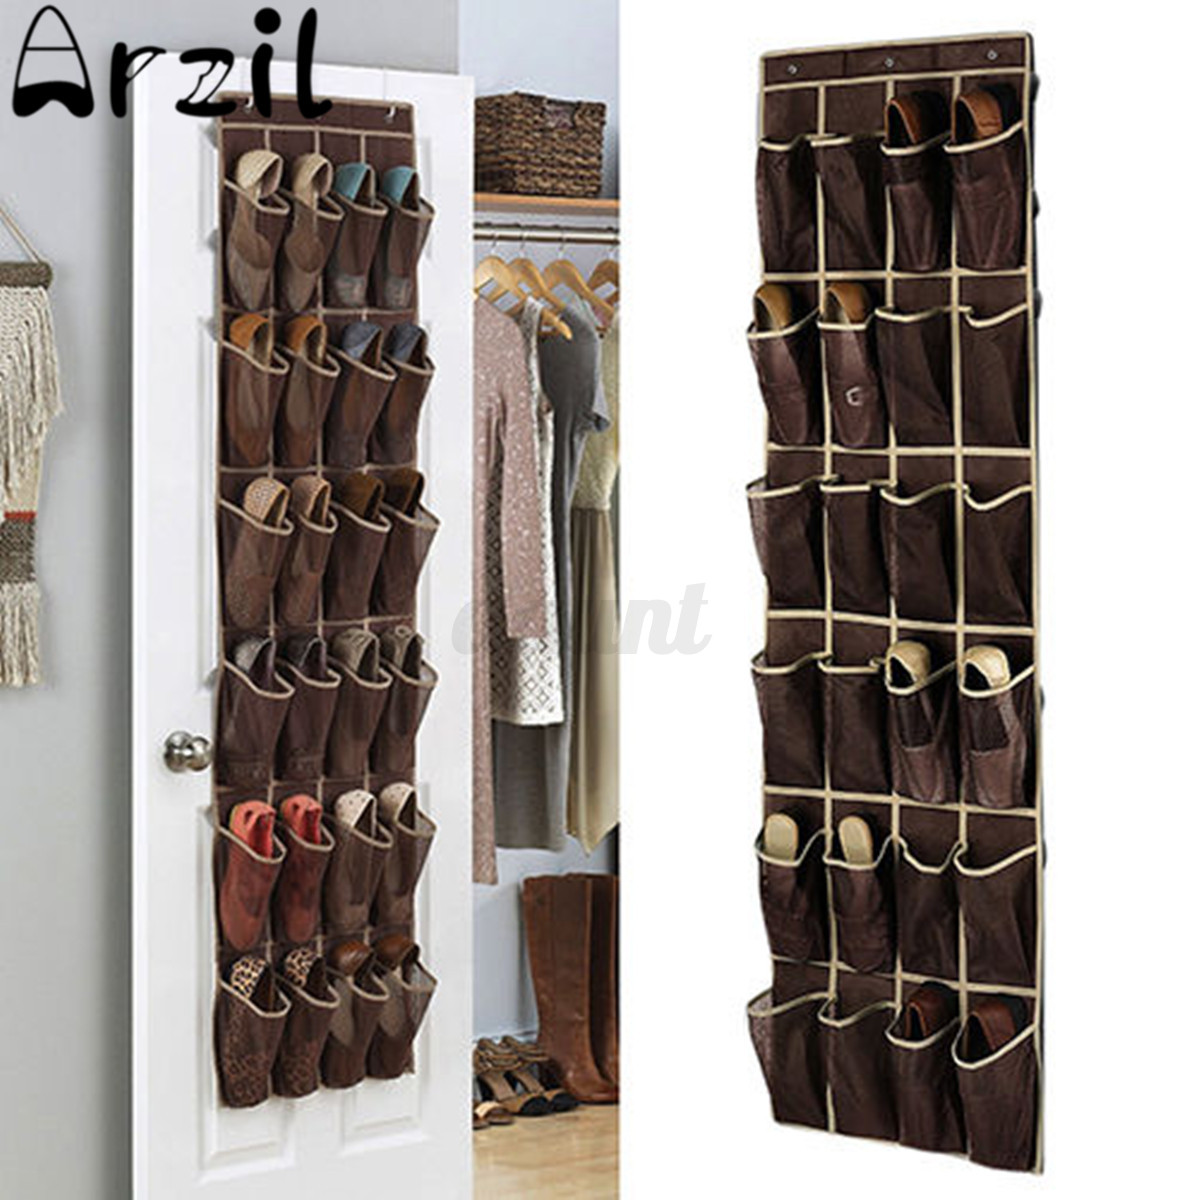 24 Pocket Home Over The Door Hanging Organizer Holder Storage Rack